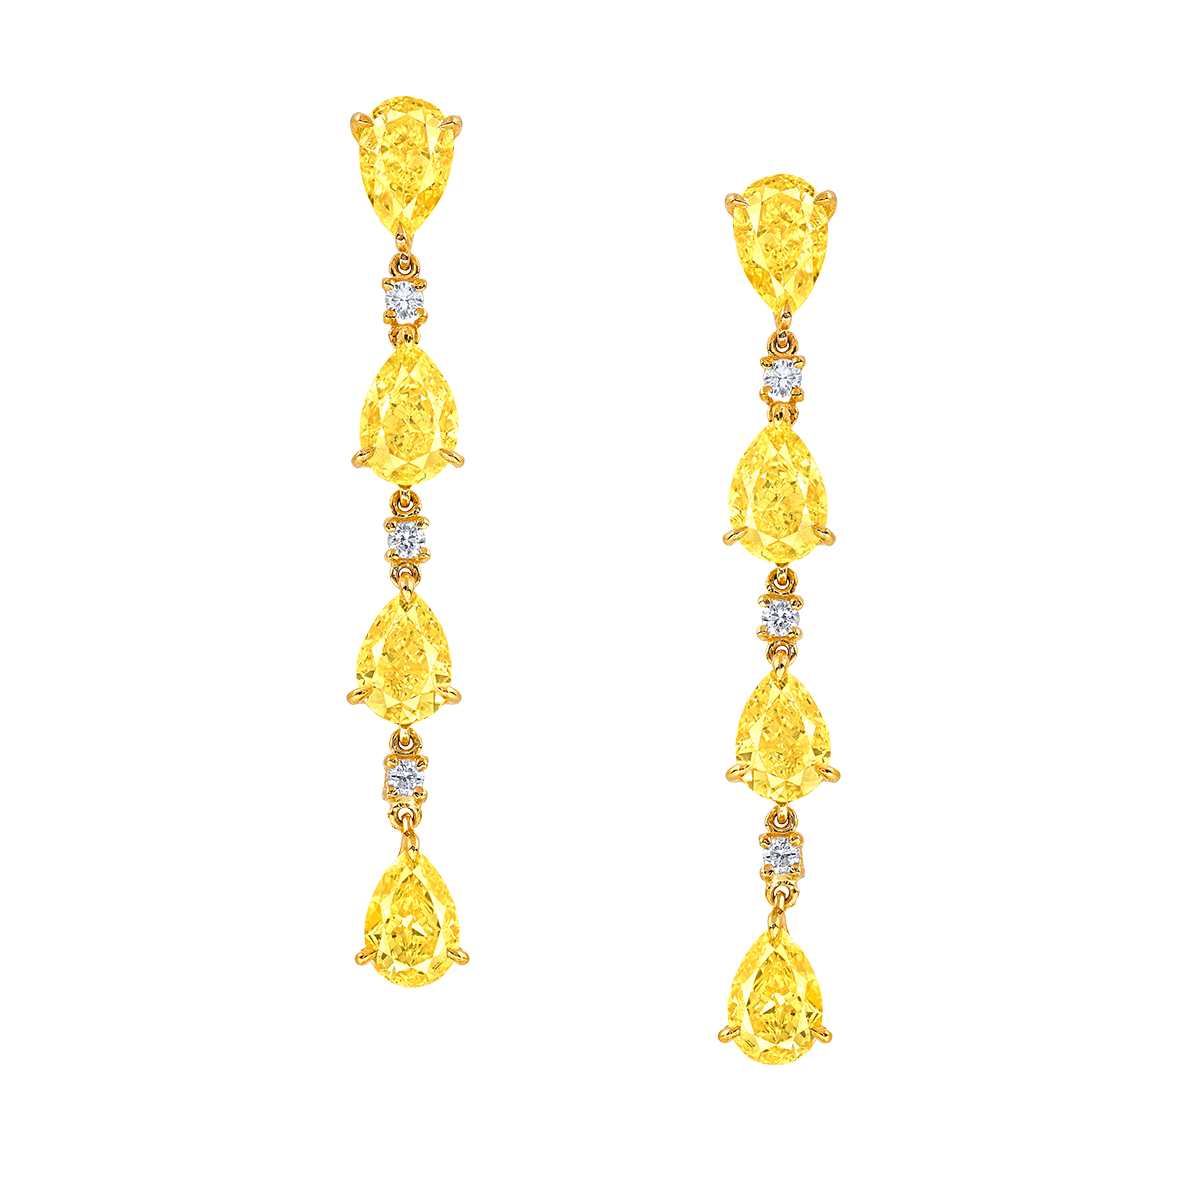 GIA 8顆共約3.76克拉 濃彩黃彩鑽鑽石耳環